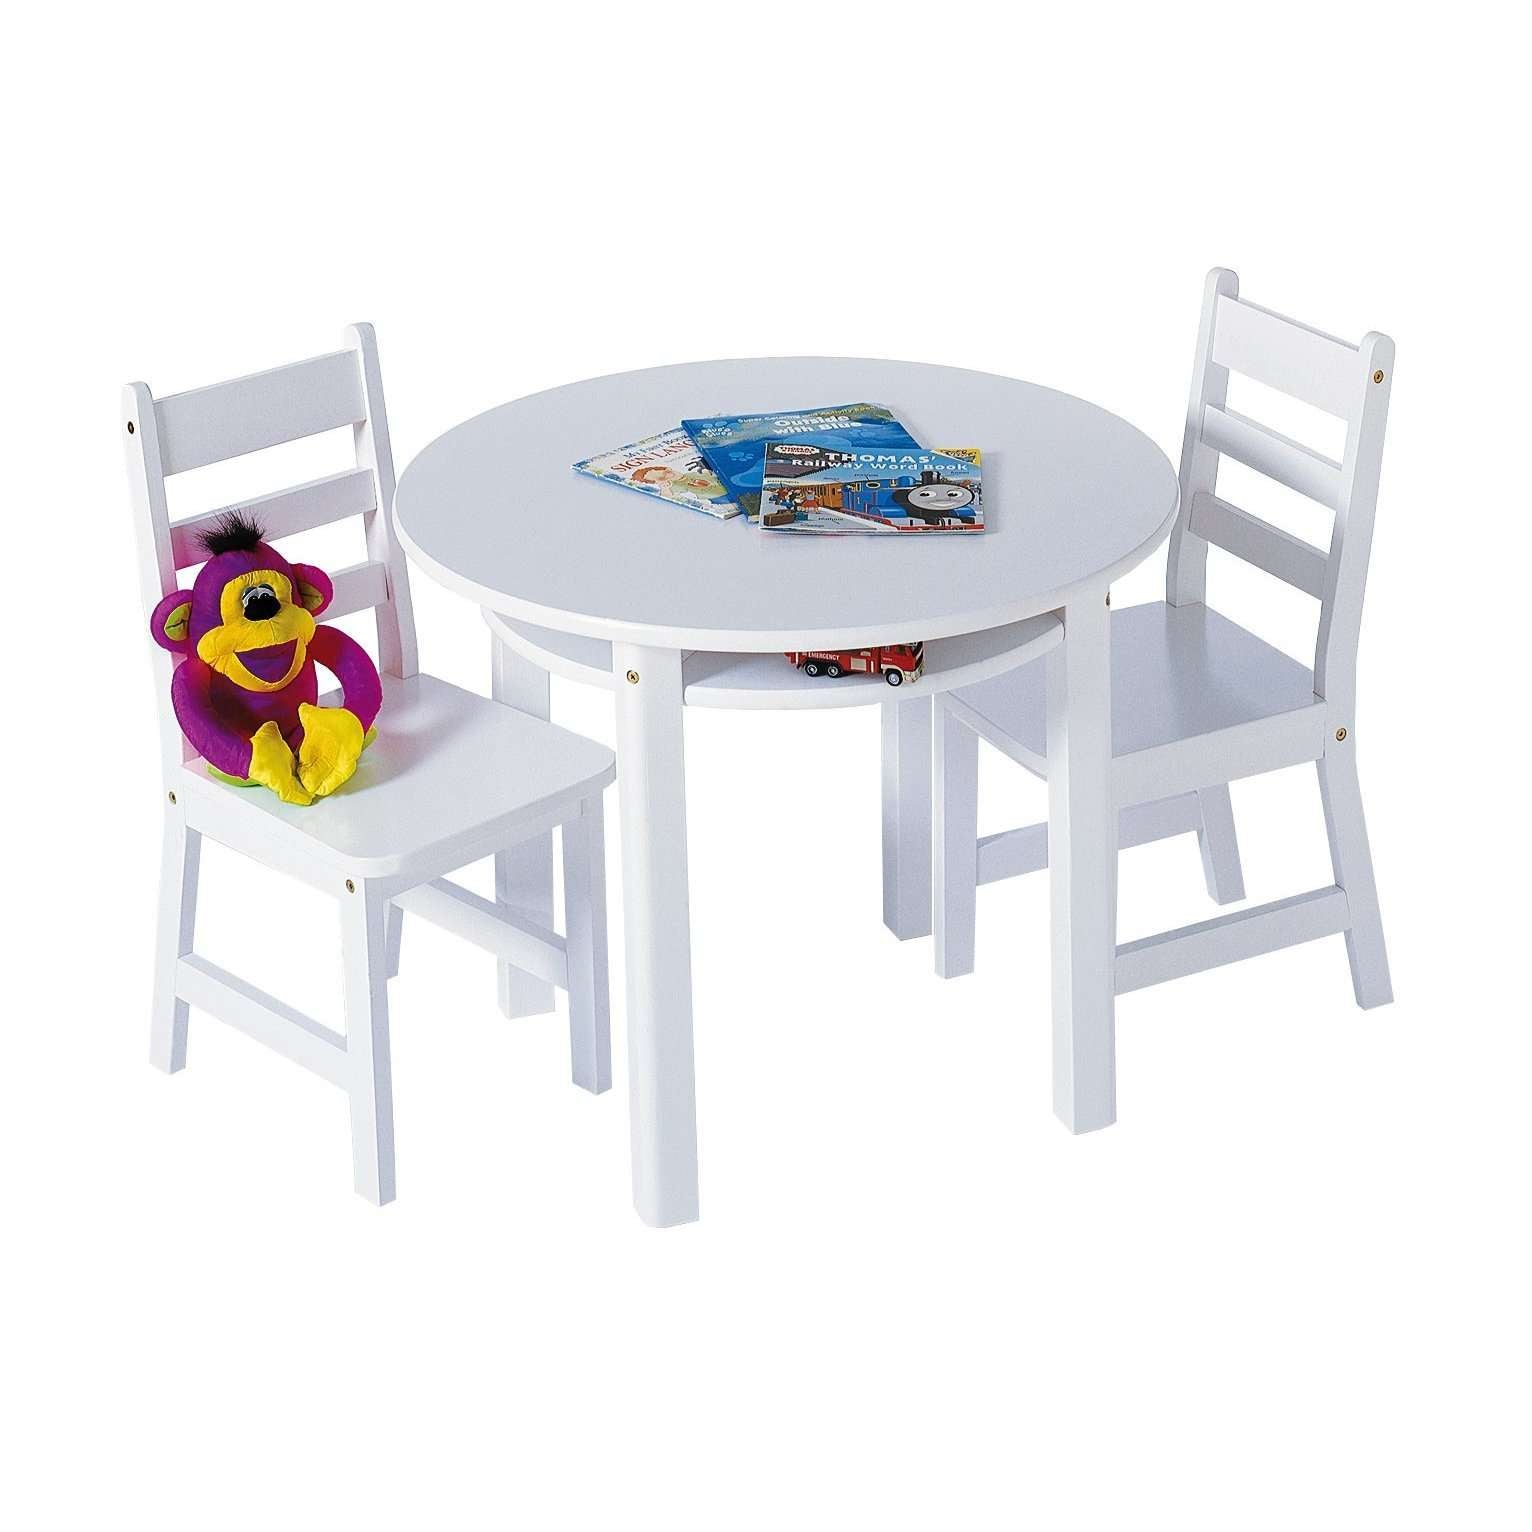 3 Piece Round Table Set in 5 different Finishes by Lipper